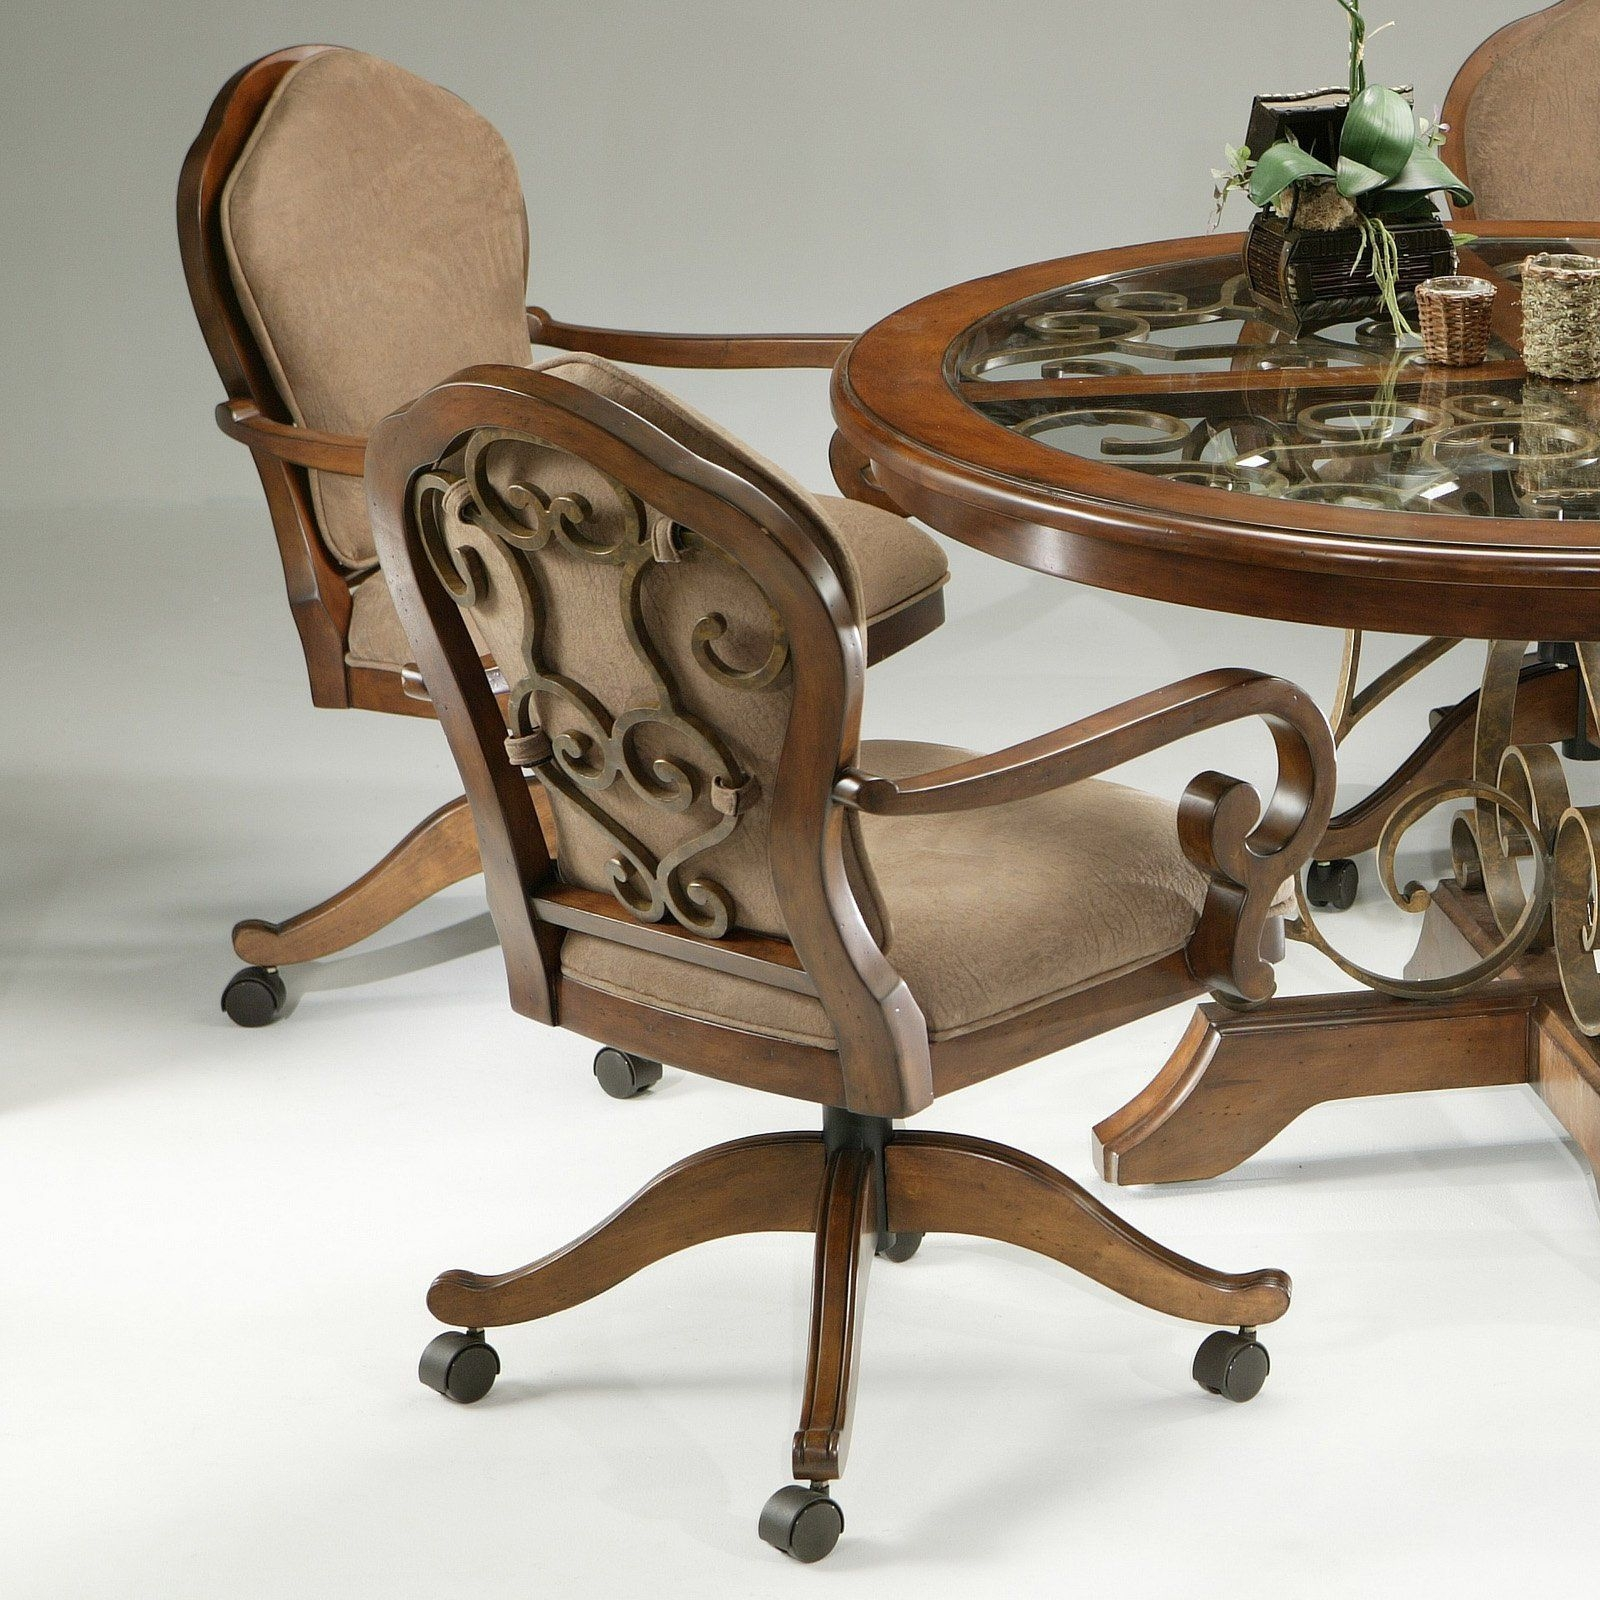 Dining Chairs Oak With Casters Upholstered Dini With . & Dining Chairs With Casters - Visual Hunt